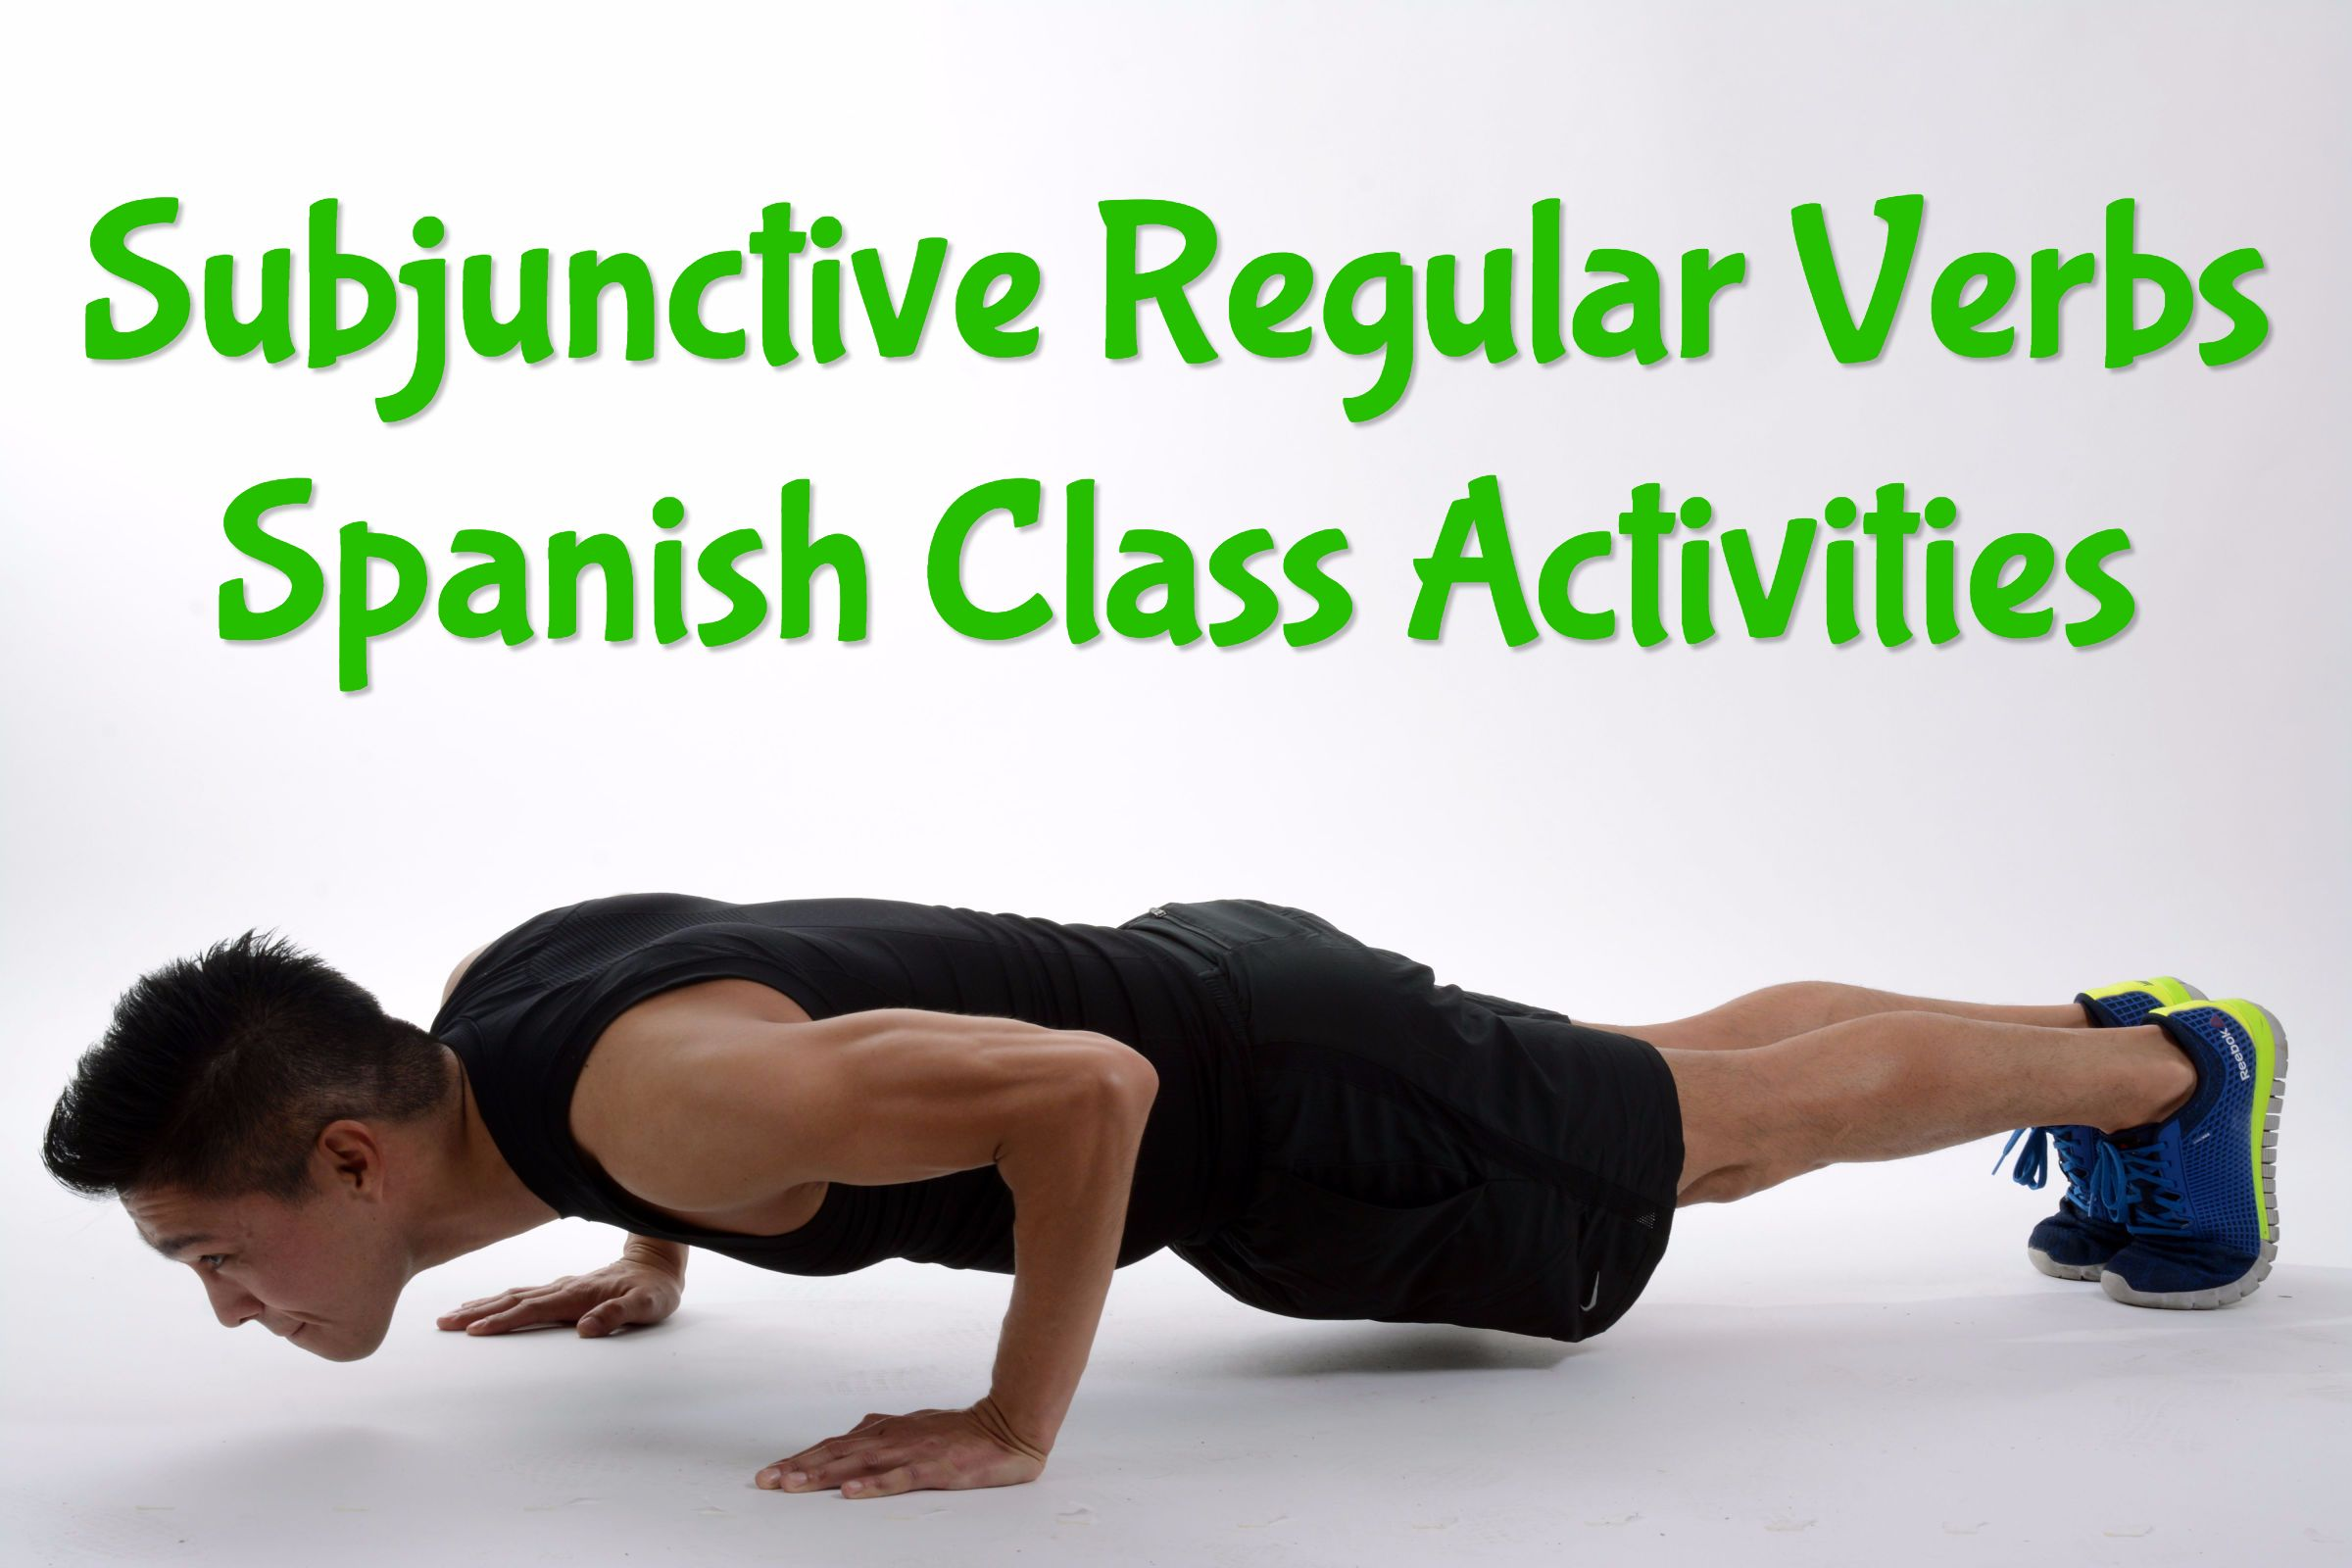 Subjunctive Regular Verbs Spanish Class Activities